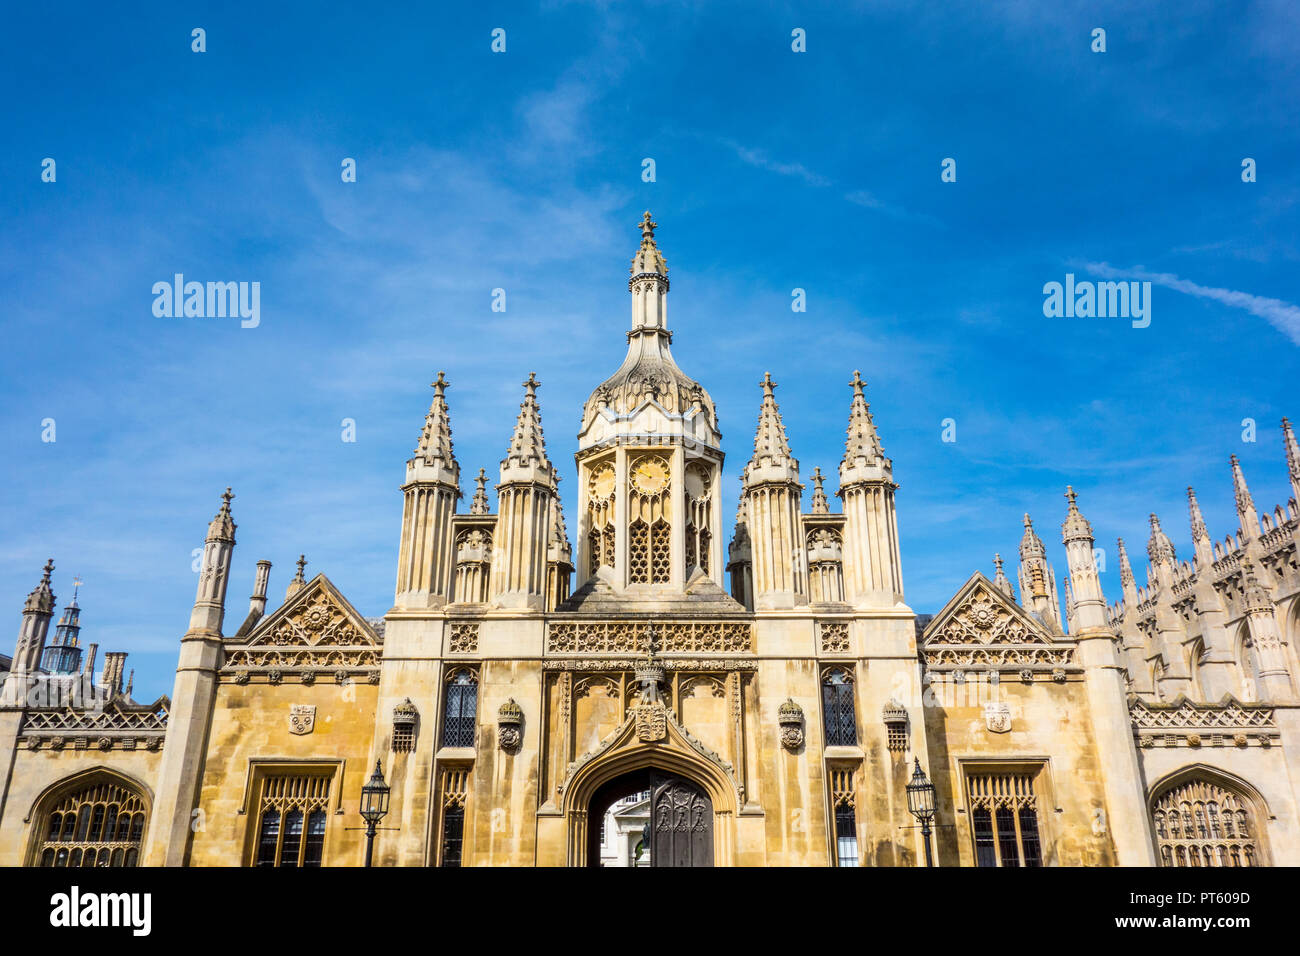 King's College Gatehouse entrance and Porters' Lodge, King's College, University of Cambridge, medieval gothic building, King's Parade, Cambridge, UK - Stock Image